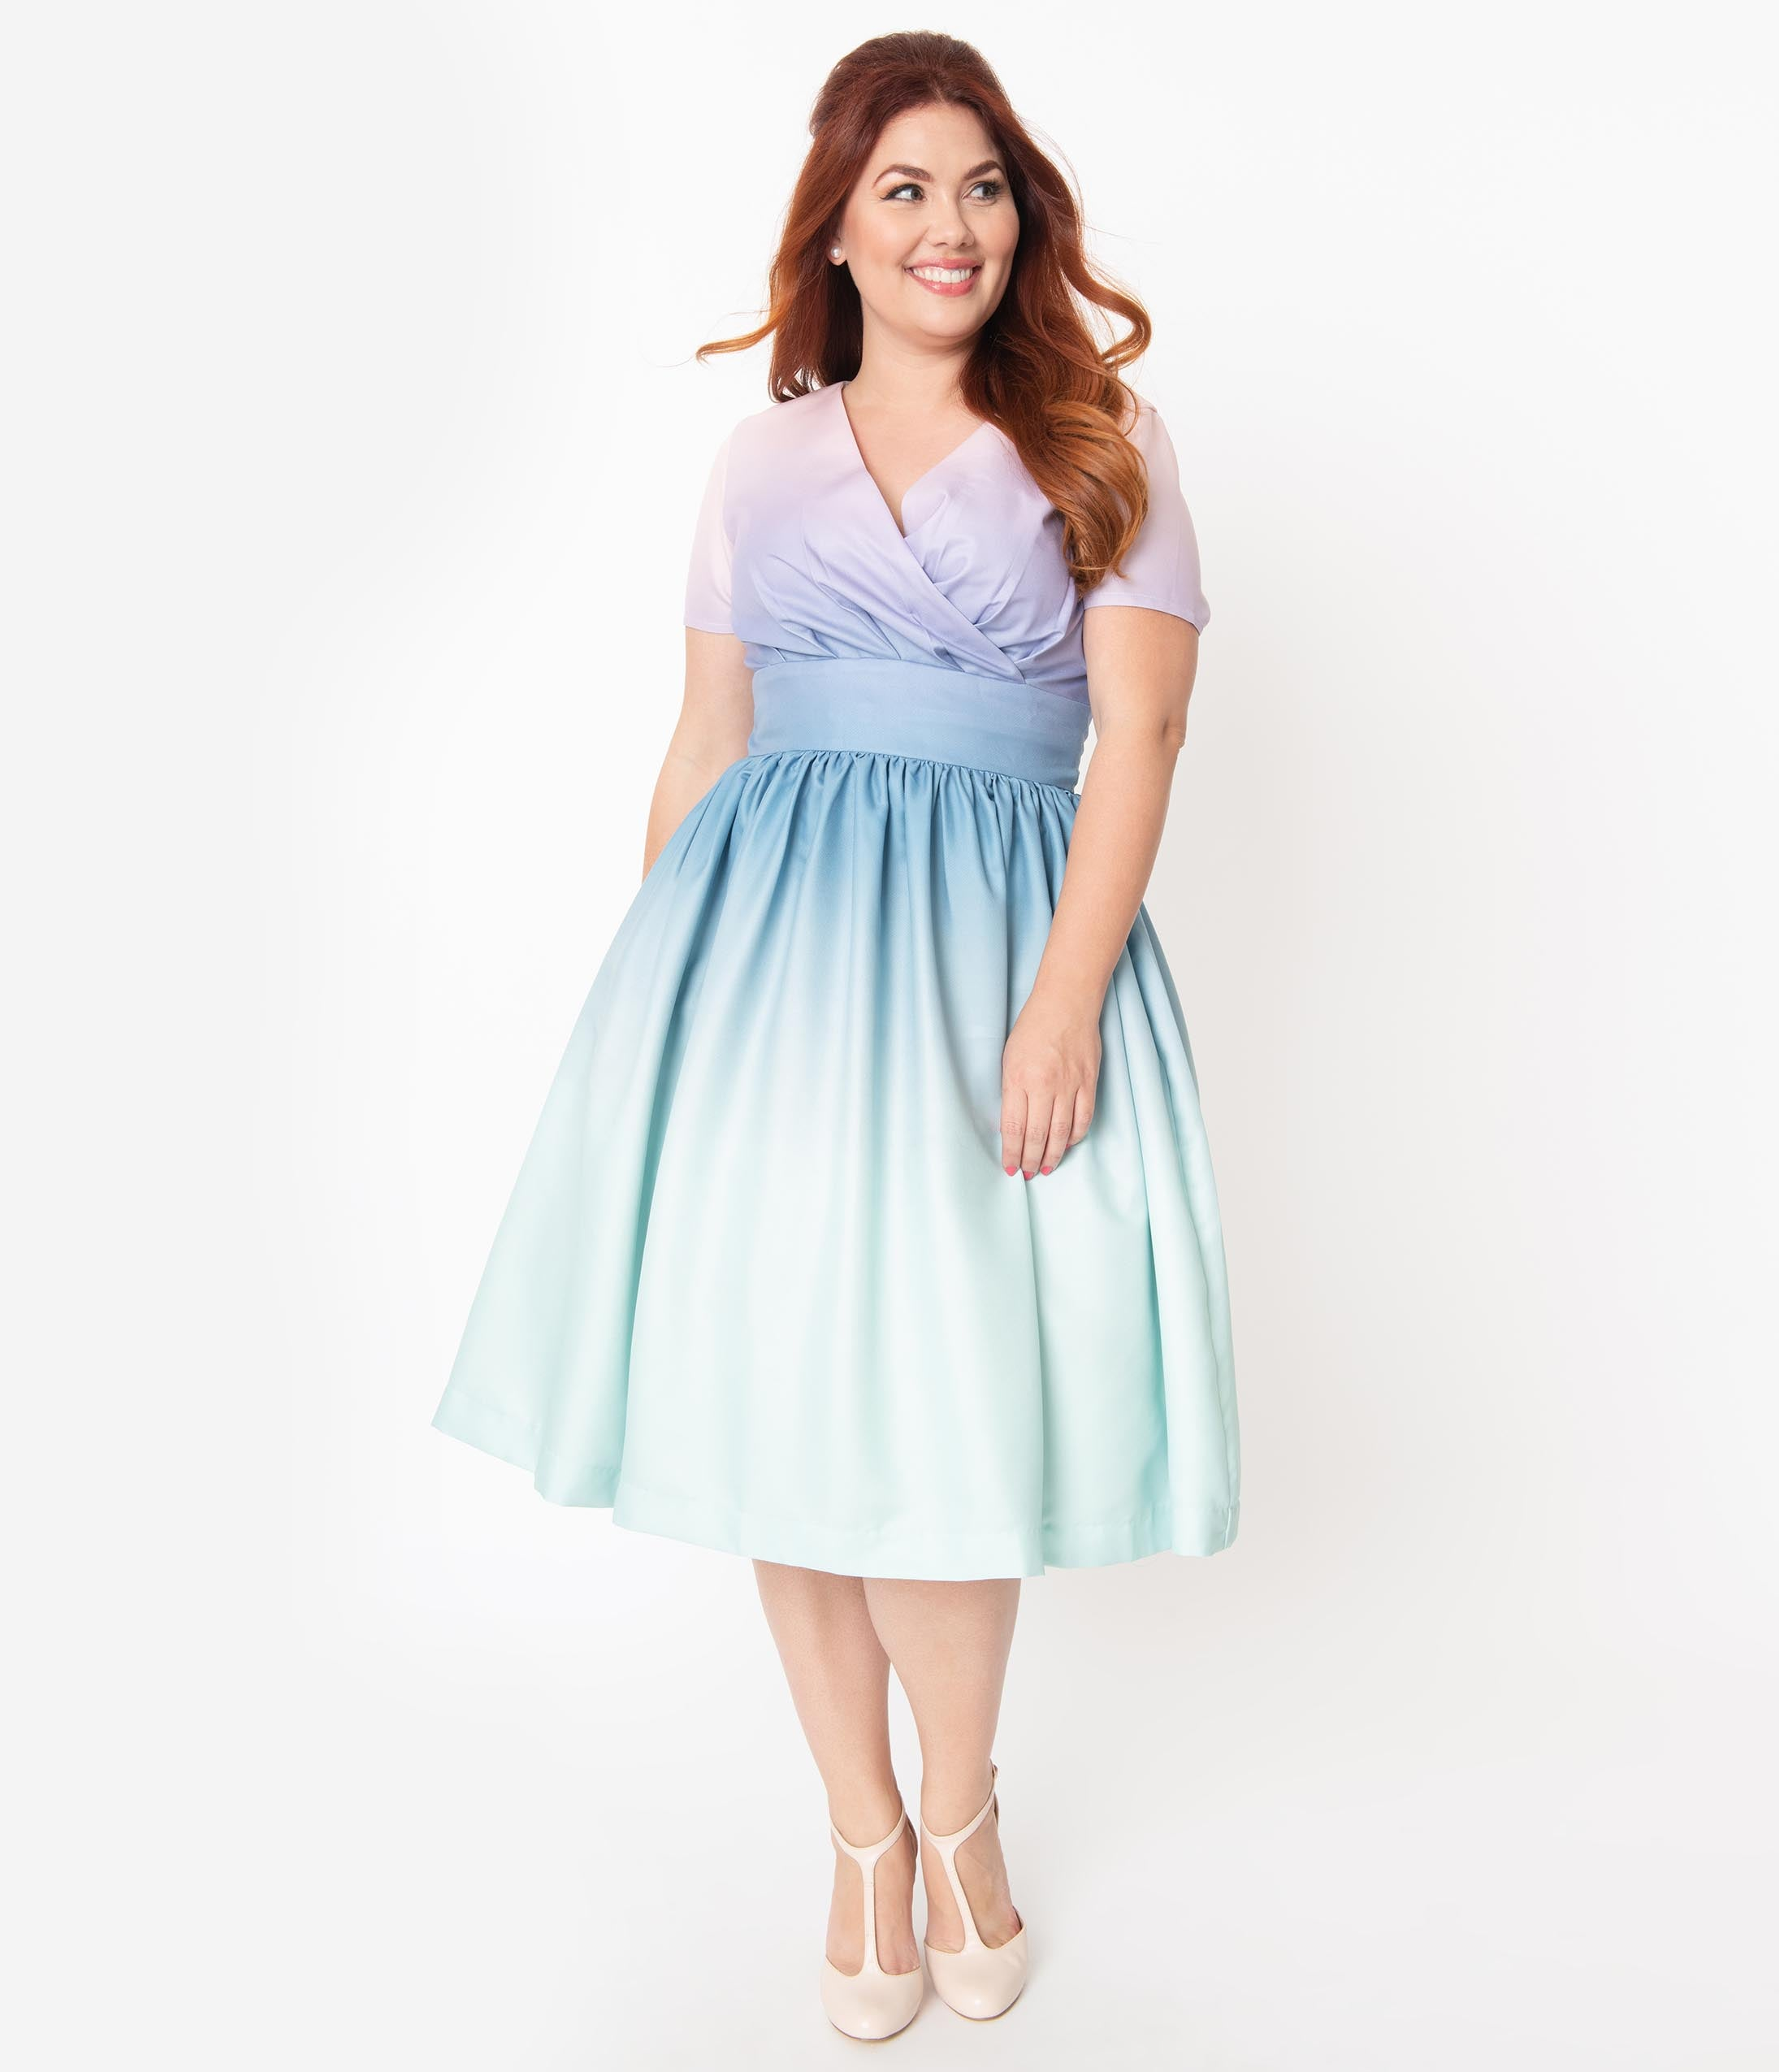 1950s Plus Size Dresses, Swing Dresses Plus Size Pastel Rainbow Ombre Alyssa Swing Dress $88.00 AT vintagedancer.com